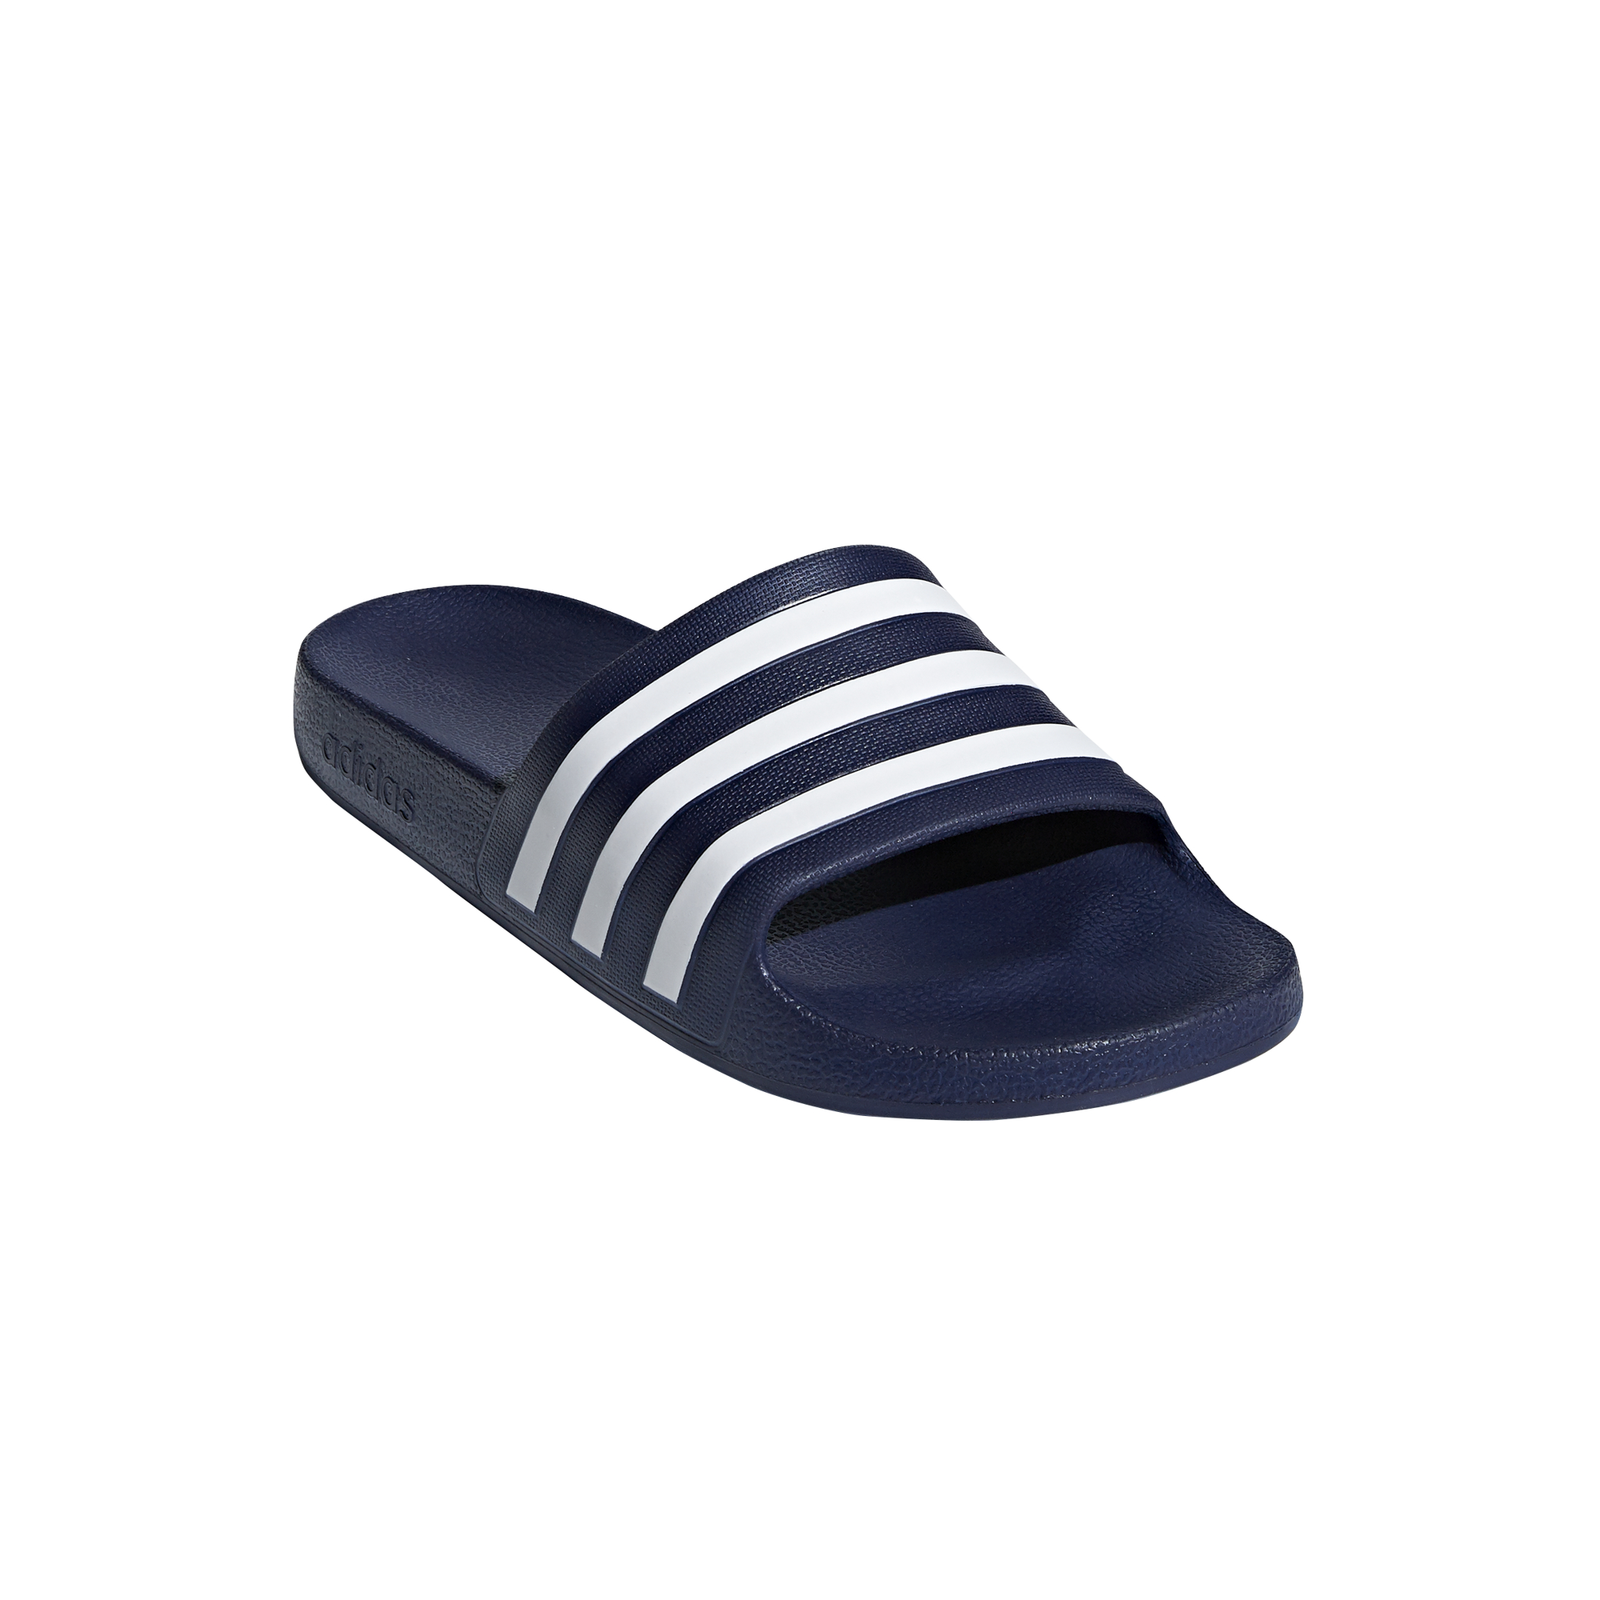 Details about Adidas Performance Womens Mens Kids Flipflops Adilette Aqua  Navy Blue- show original title